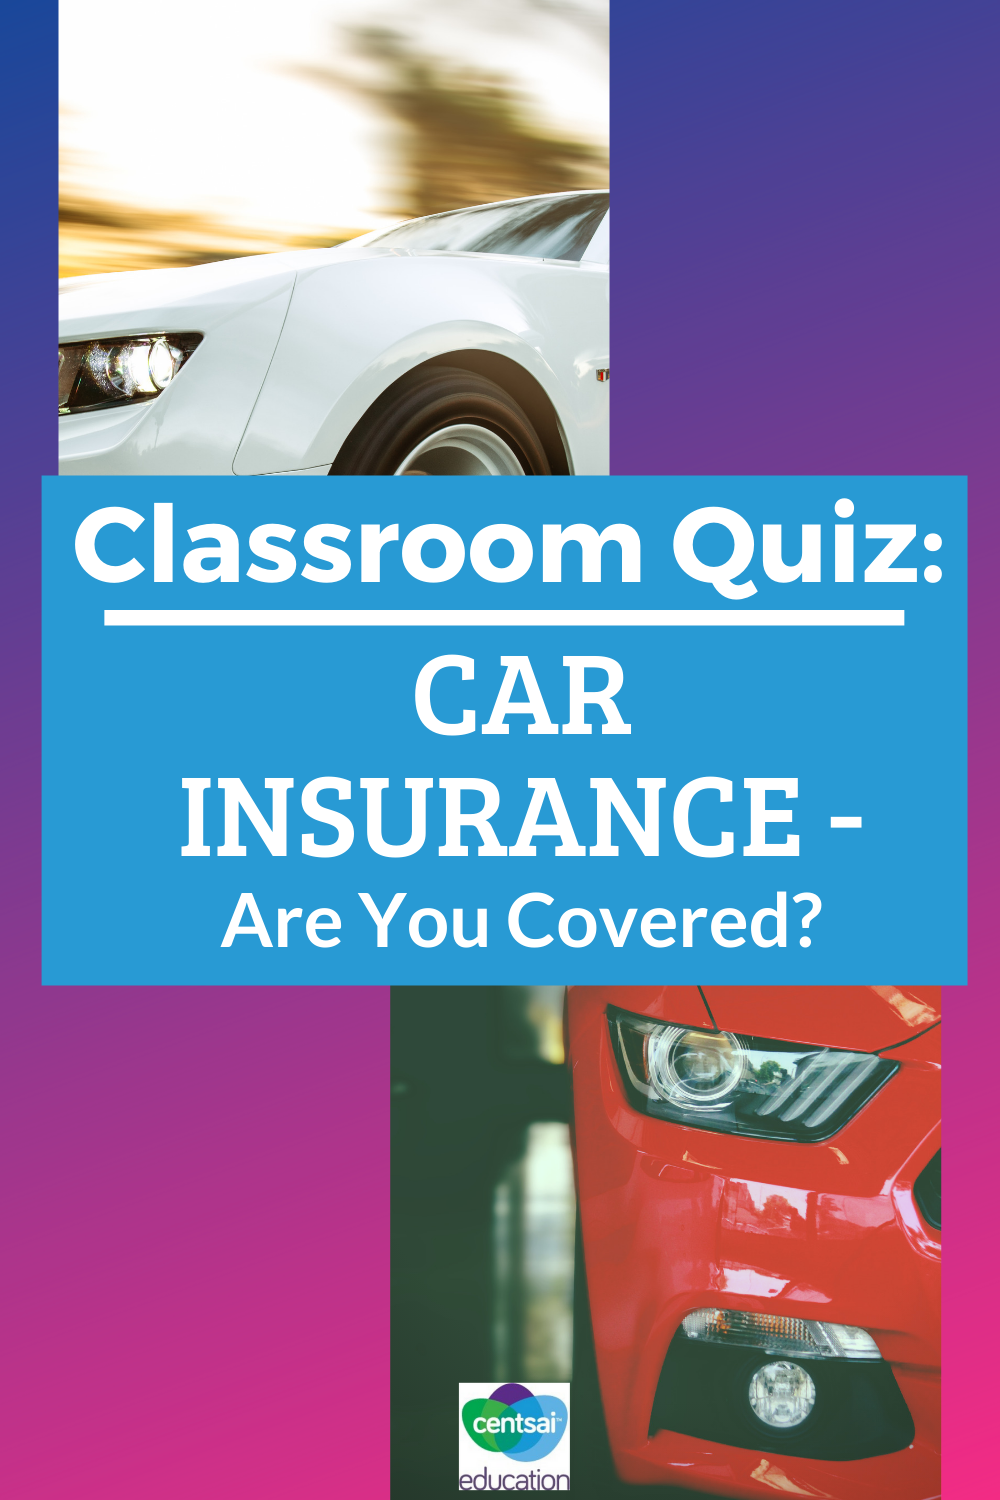 Have any students driving? What's their car insurance situation? Make sure they know what's up! #carinsurance #CentSaiEducation #student #college